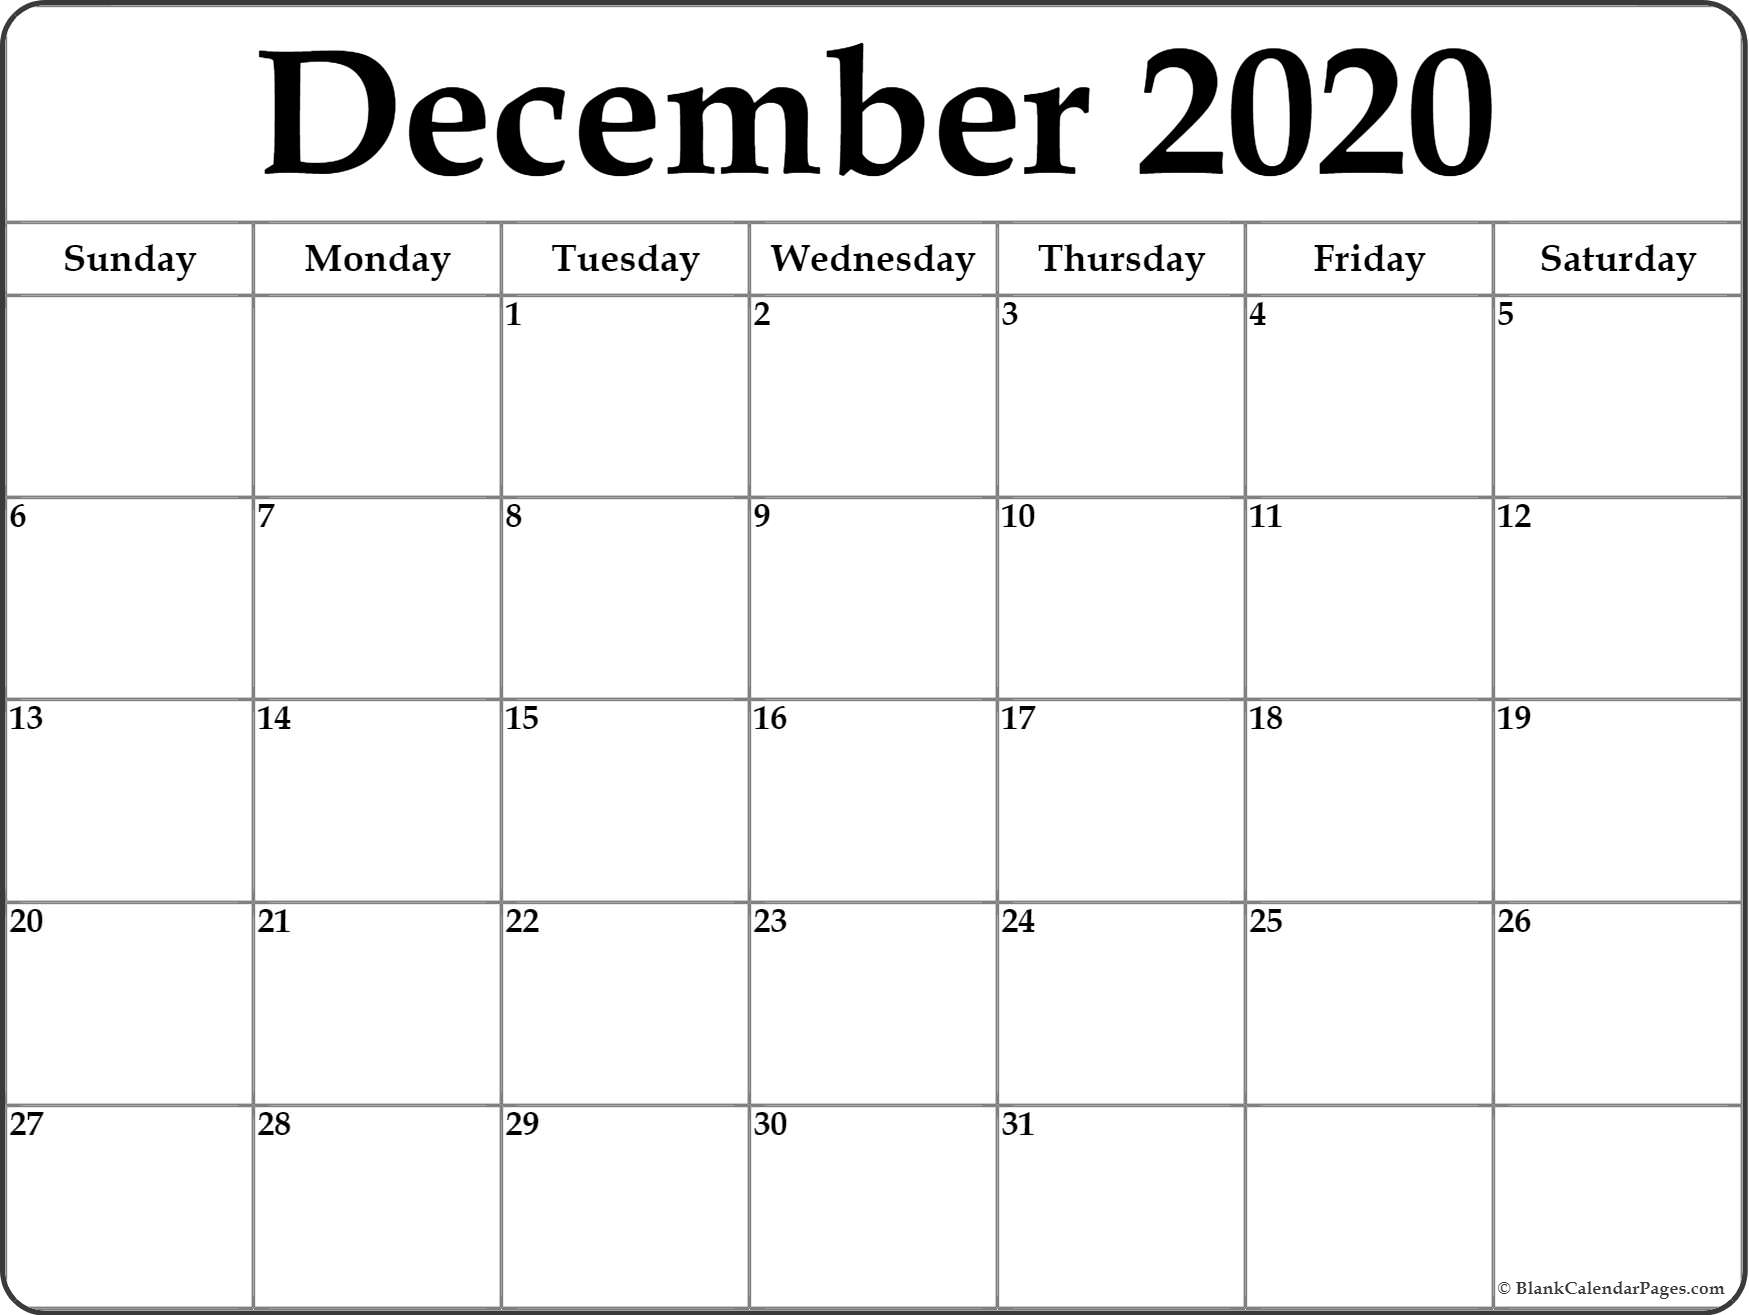 December 2020 Calendar | Free Printable Monthly Calendars